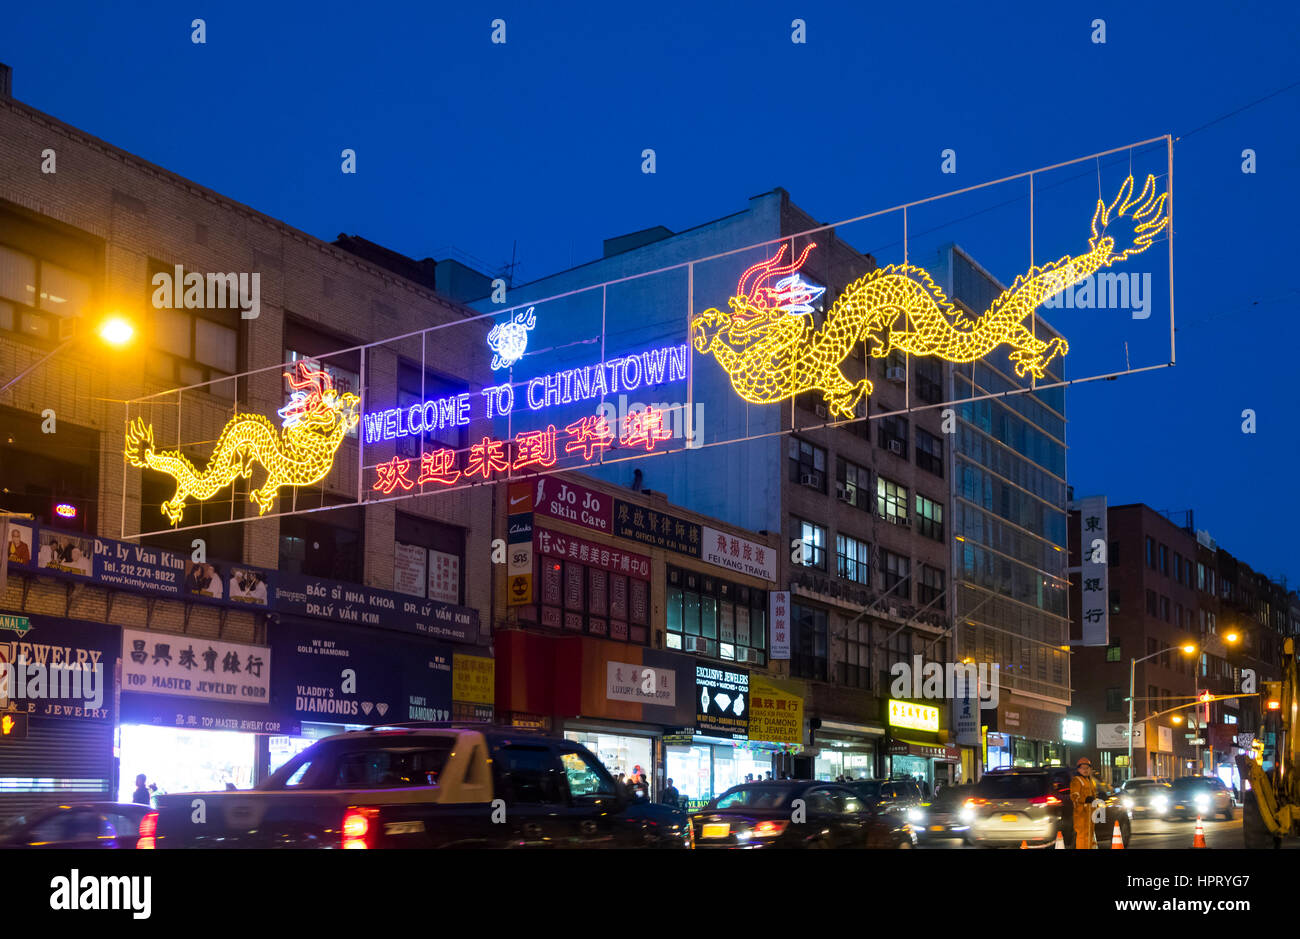 Chinatown New York City Night High Resolution Stock Photography And Images Alamy